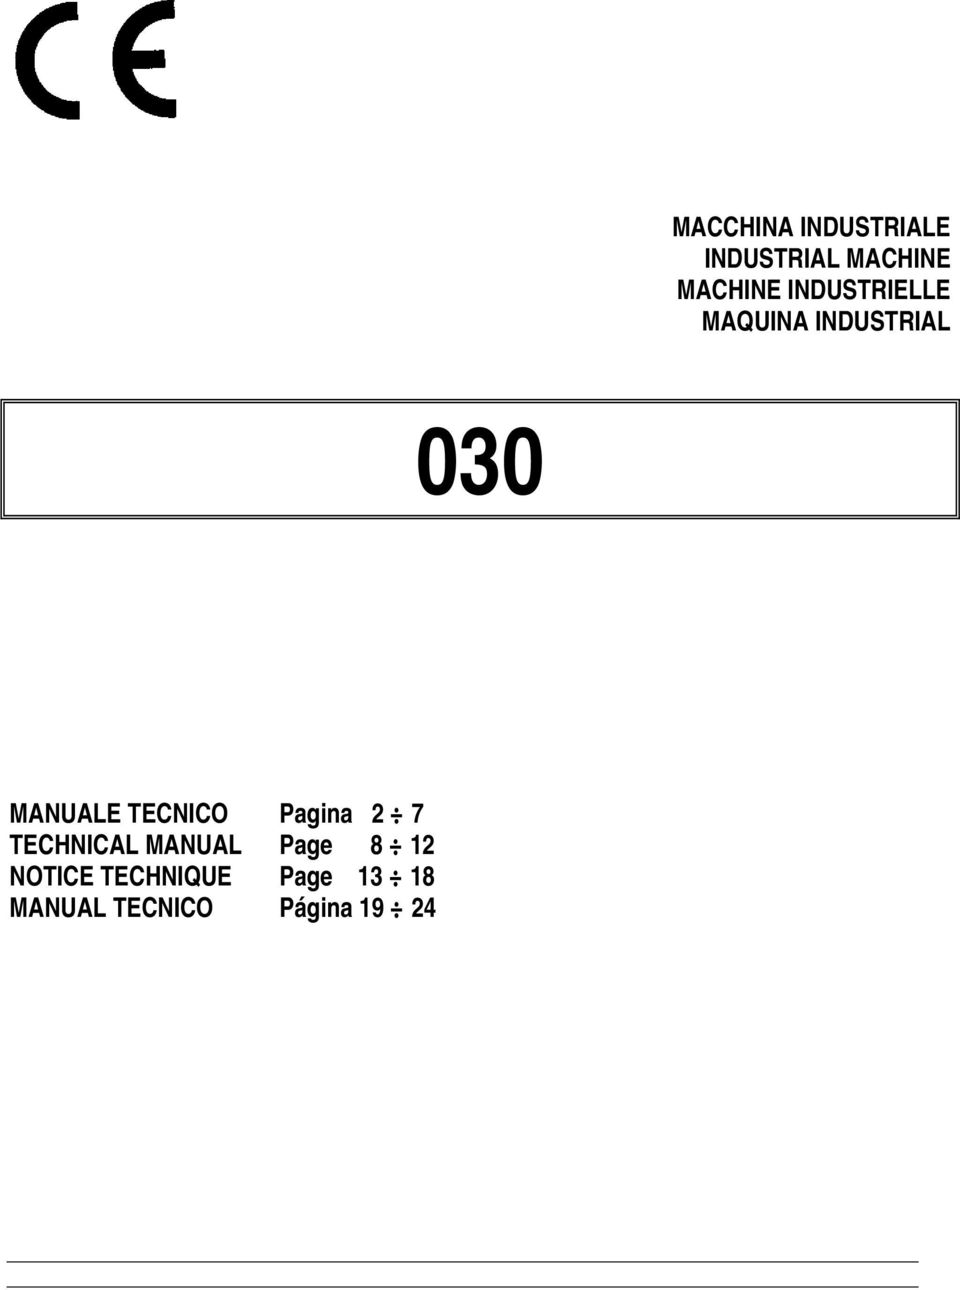 TECNICO Pagina 2 7 TECHNICAL MANUAL Page 8 12